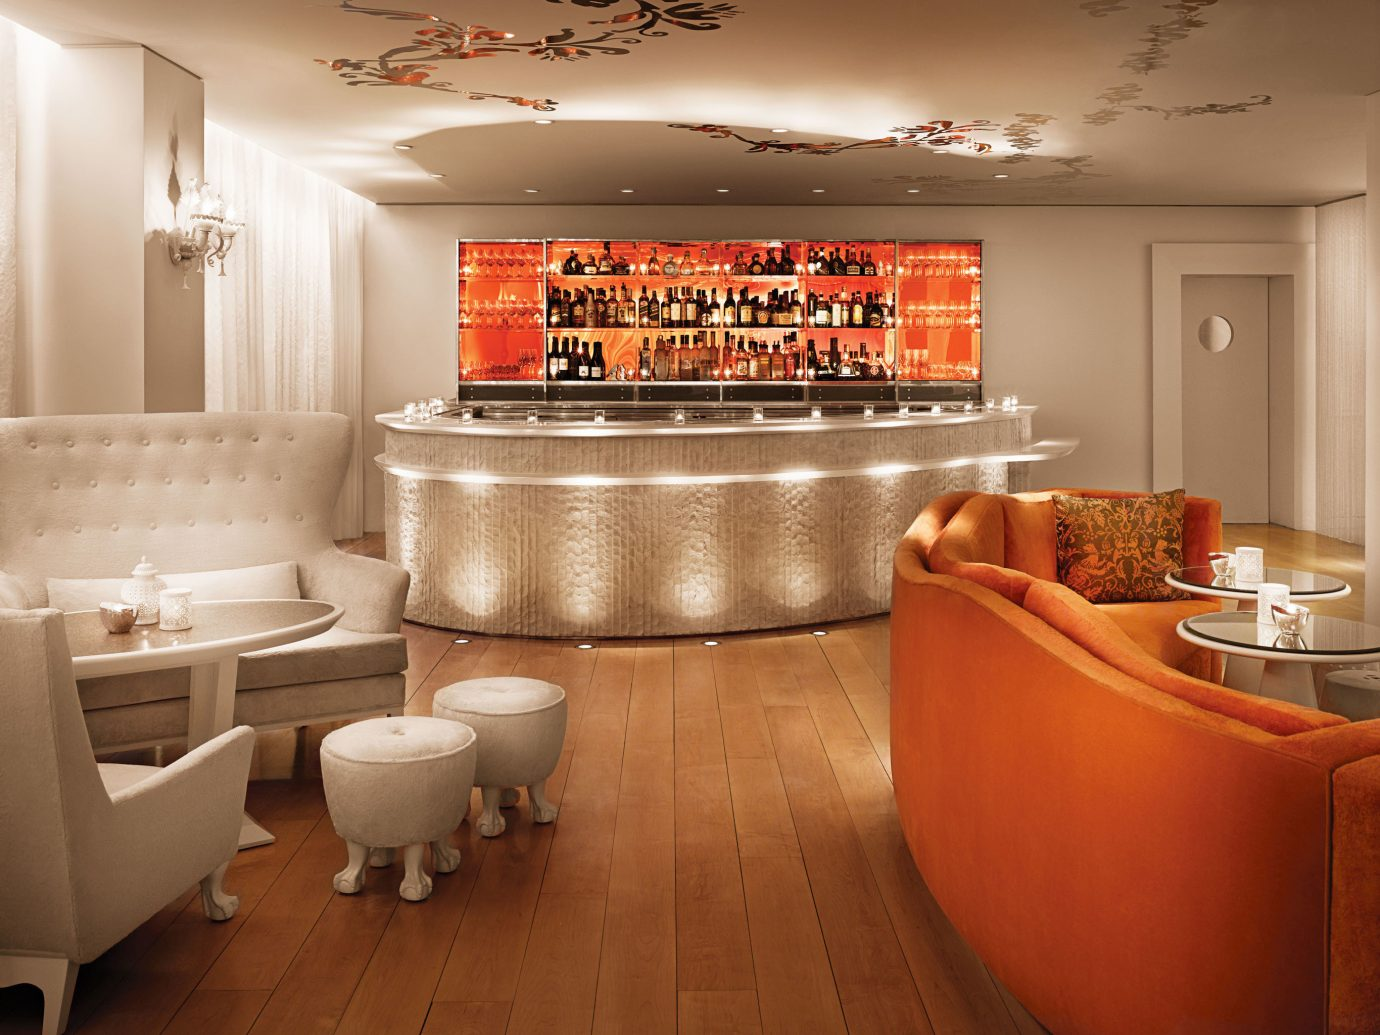 Bar Boutique City Drink Hotels Lobby Lounge indoor ceiling wall floor room orange home interior design living room Kitchen restaurant Design cabinetry window covering furniture